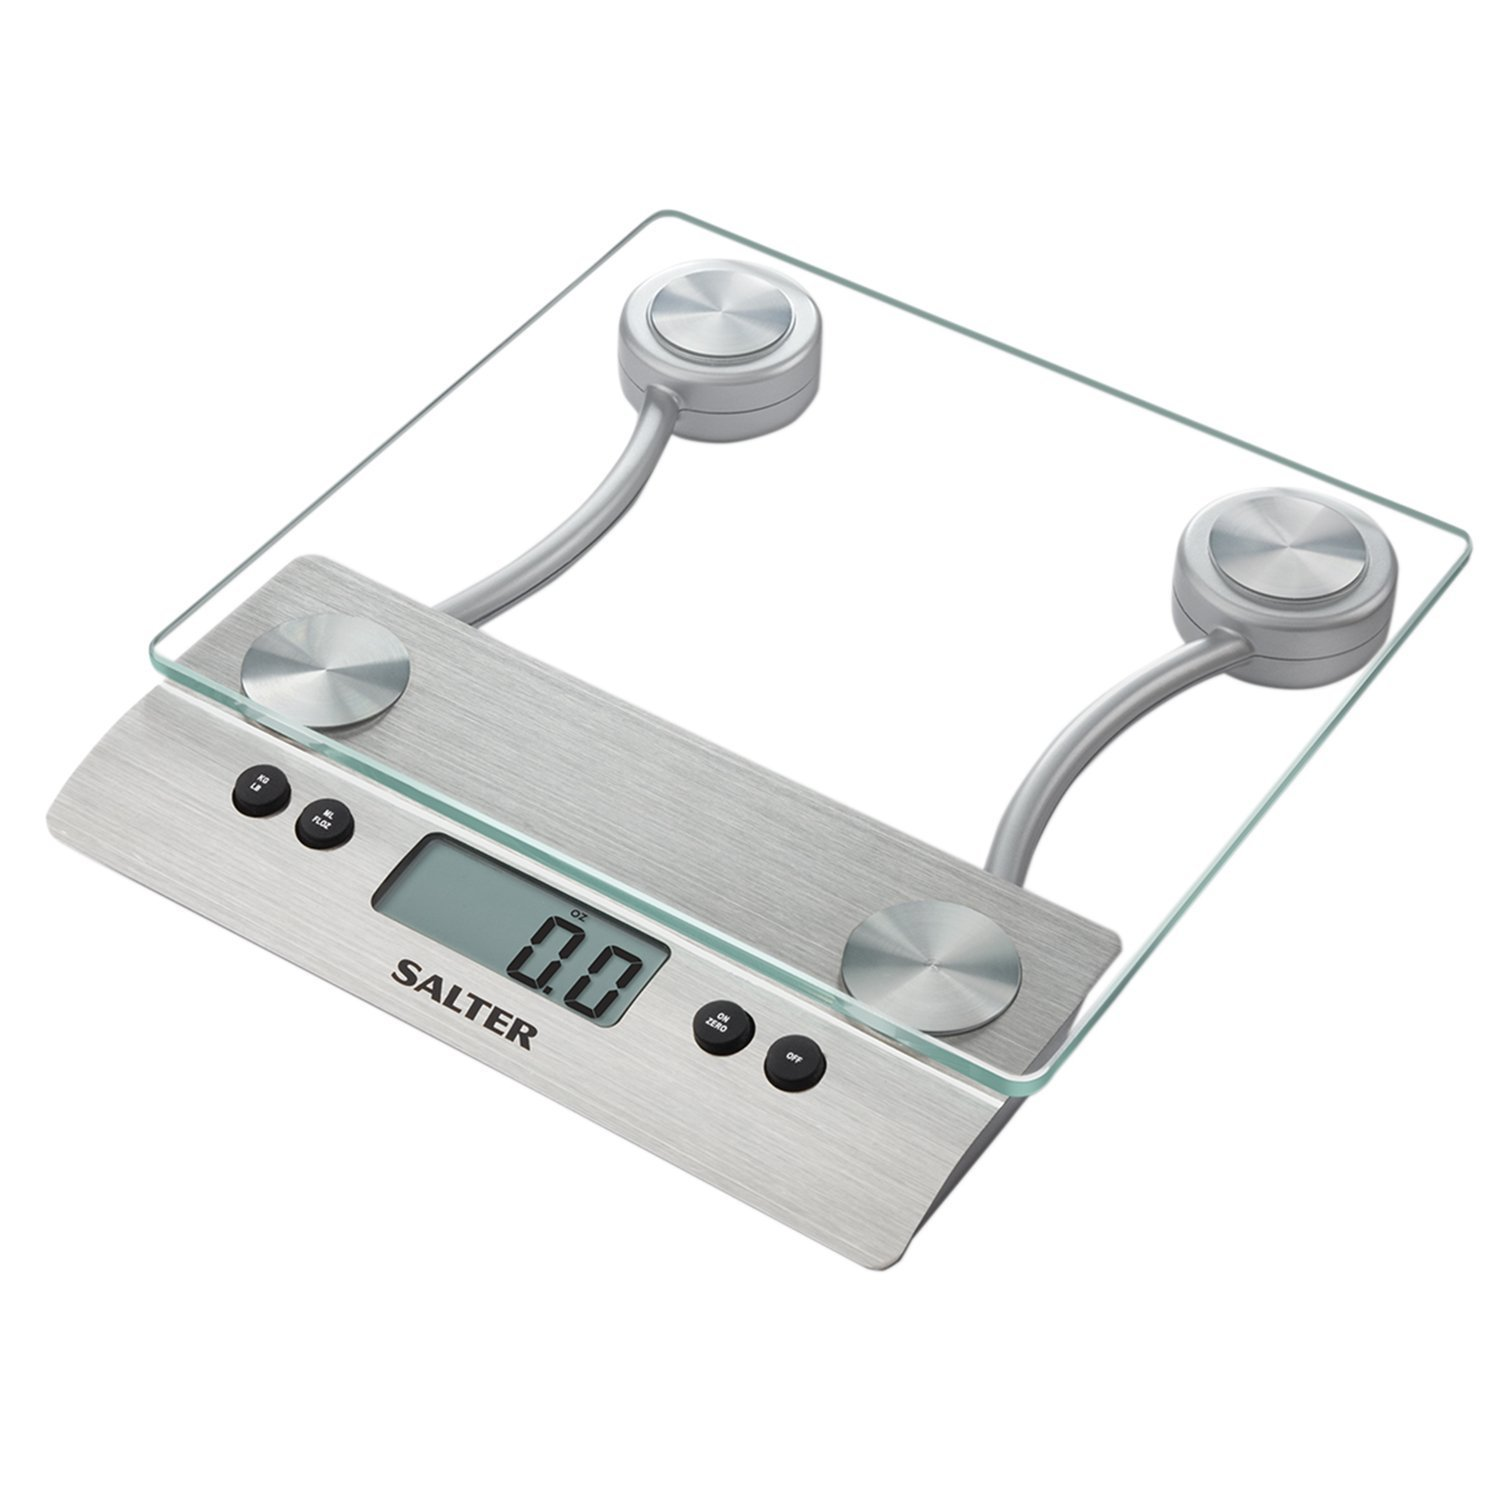 Amazon.com: Salter Aquatronic Glass Electronic Kitchen Scale ...